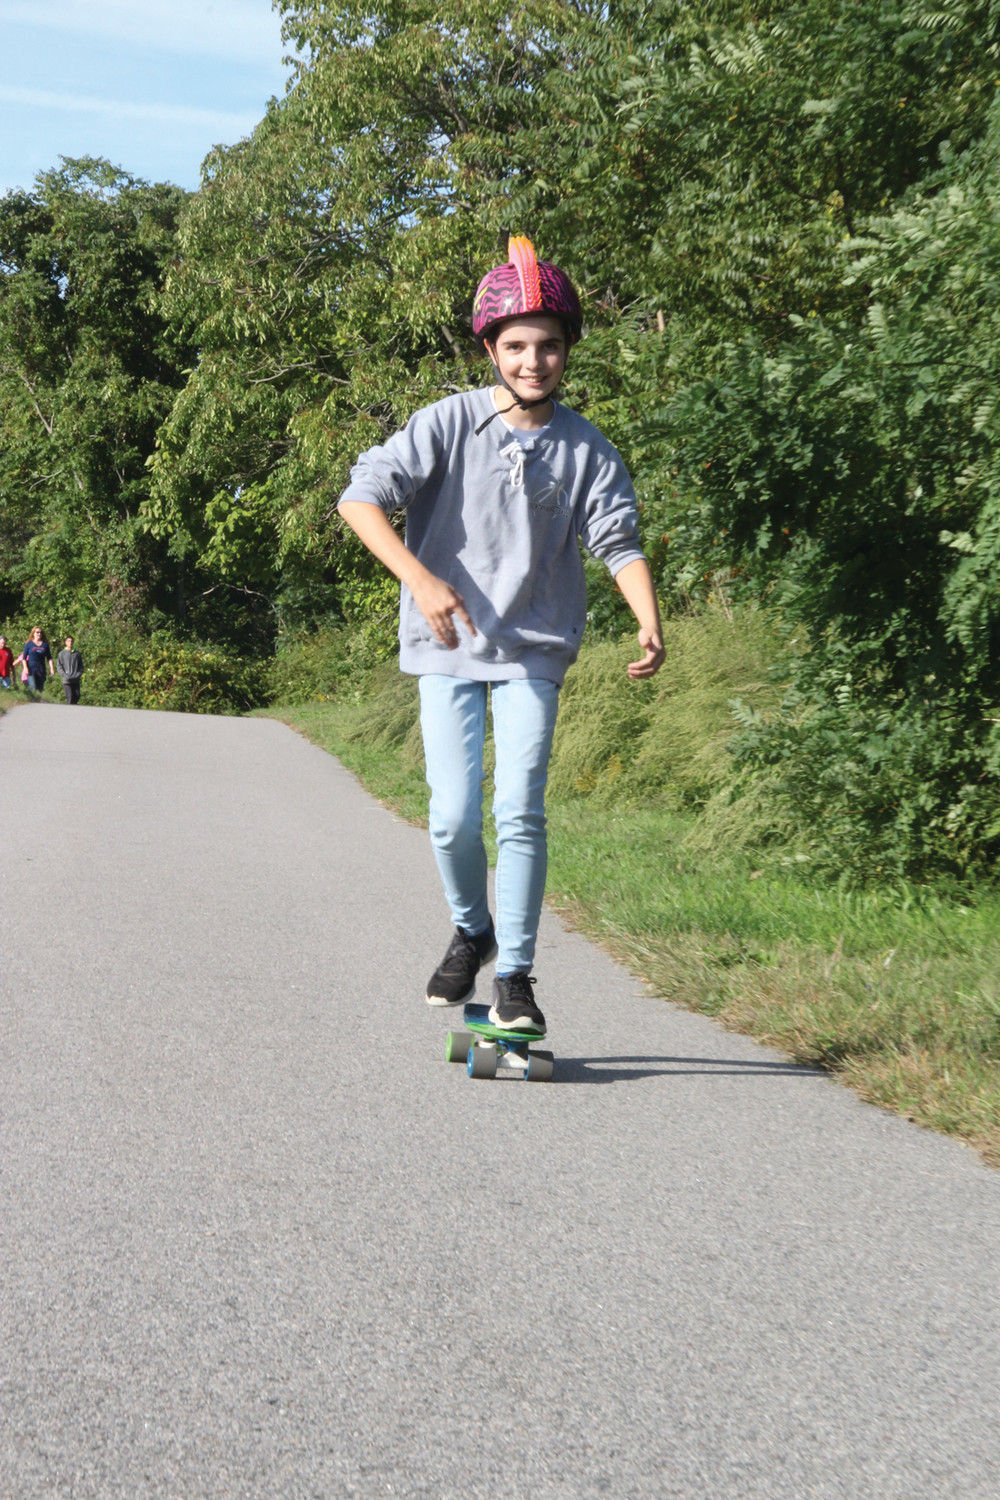 POINT ON A ROLL: Coventry residents Lilly Ancil and her mother Laura traveled the park path. Lilly, wearing a helmet in the shape of a Mohawk cut, did it on her skateboard.